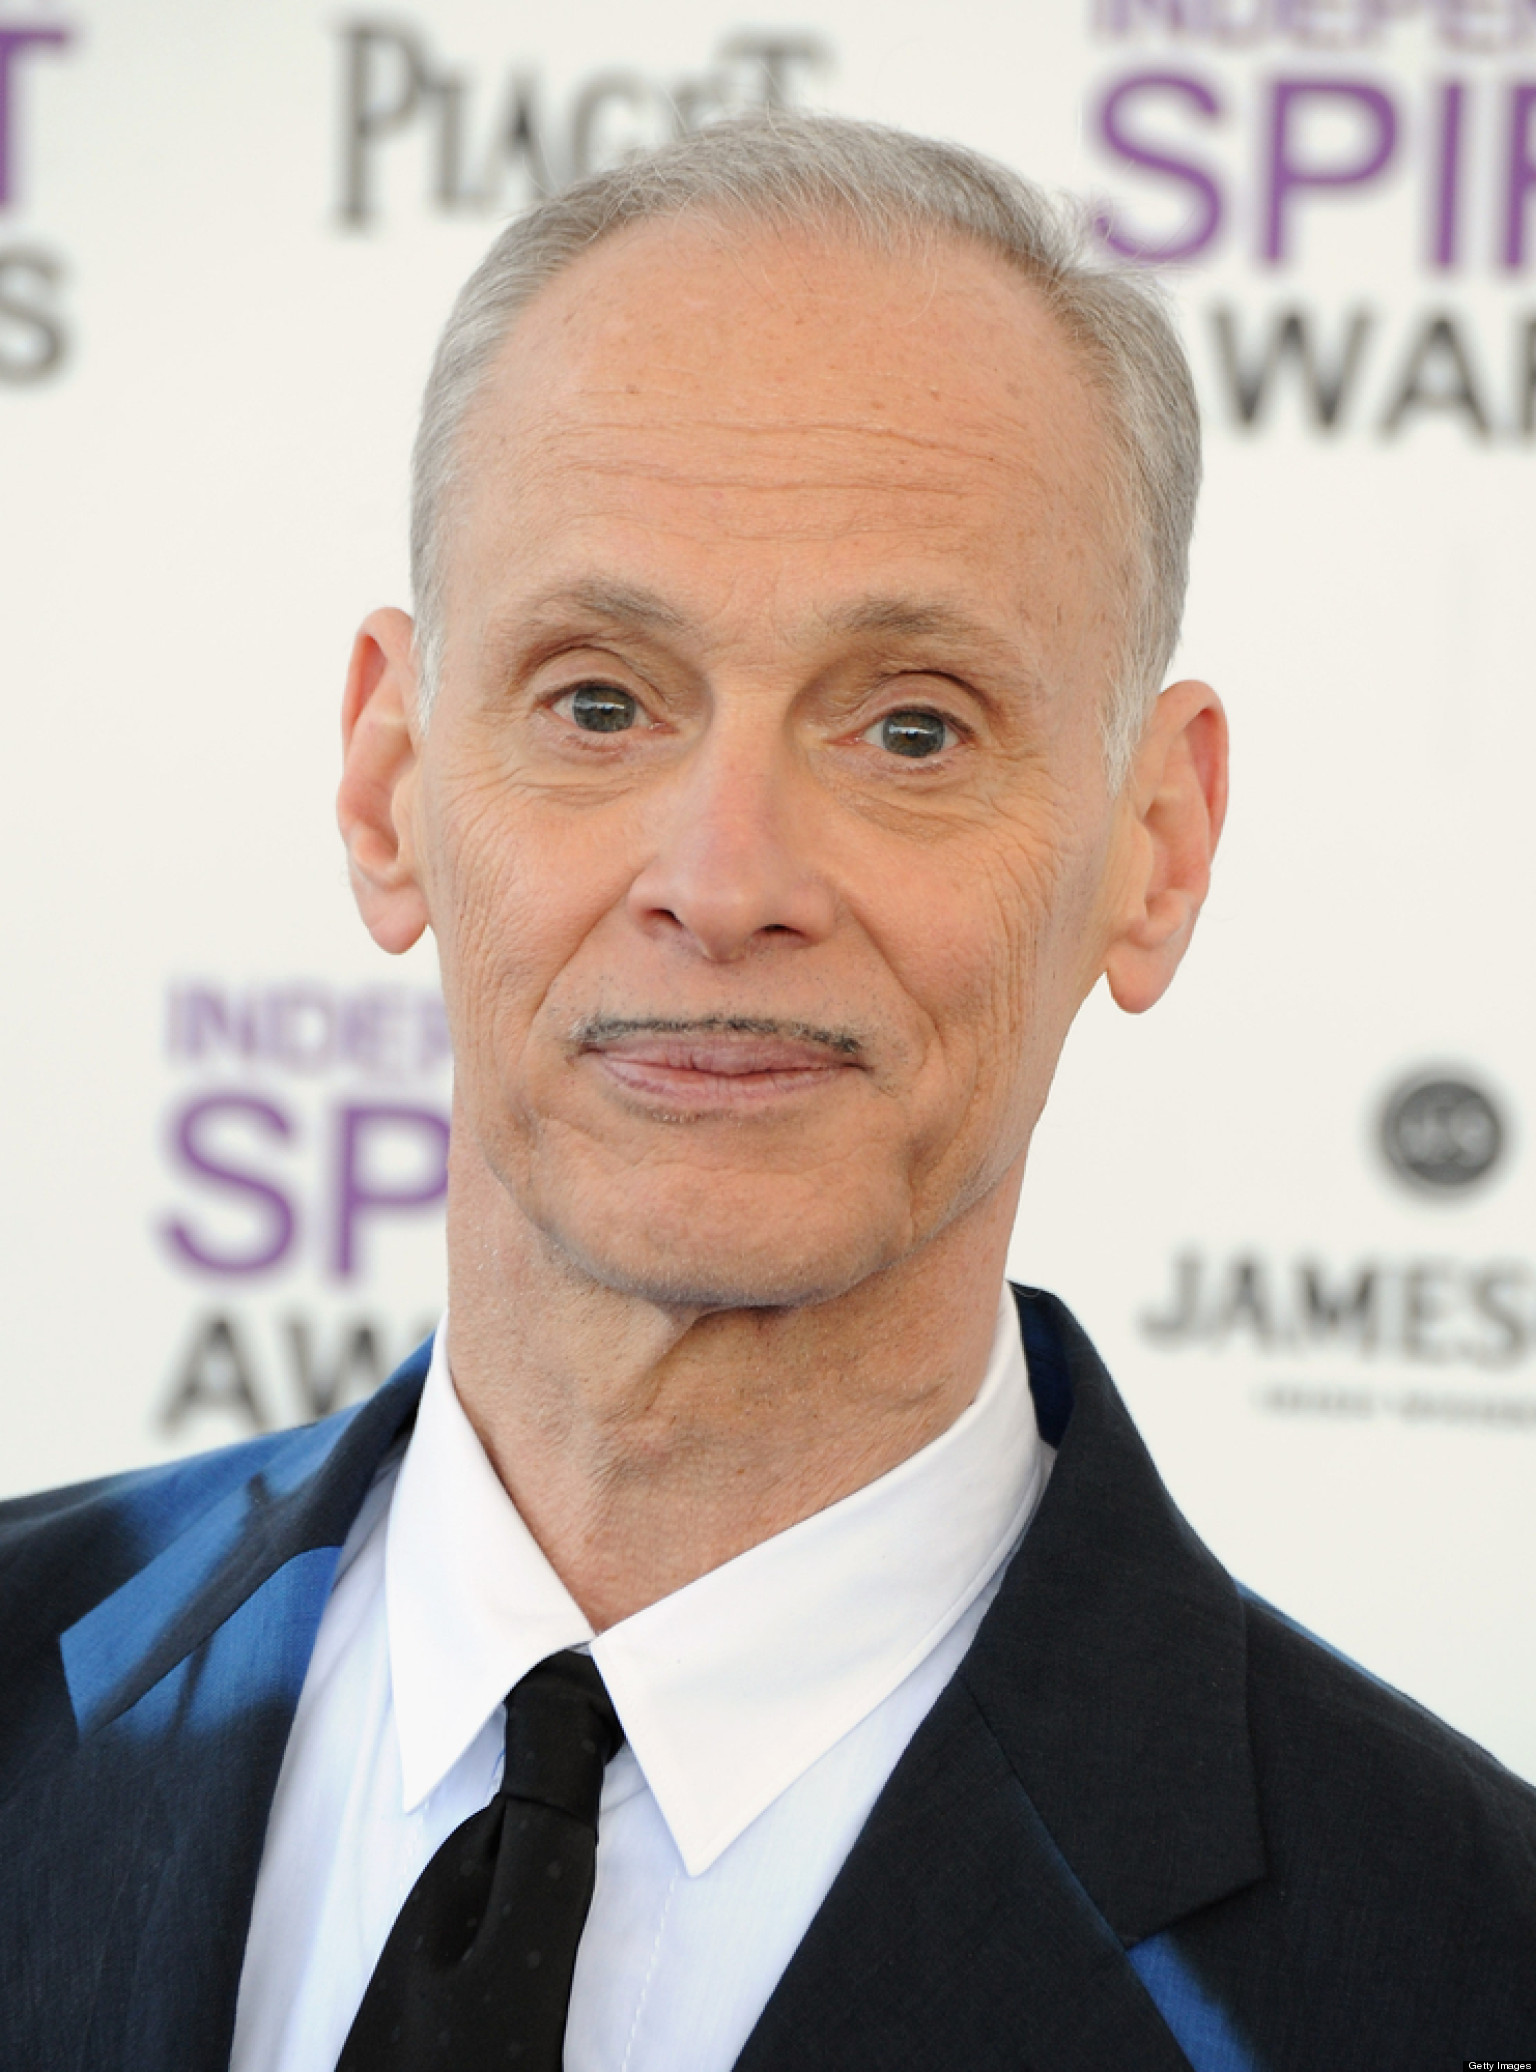 john waters 2016john waters кинопоиск, john waters young, john waters creep, john waters simpsons, john waters film, john waters best films, john waters hairspray, john waters steve buscemi, john waters role model, john waters top movies 2016, john waters birthday, john waters 2016, john waters all the rivers run, john waters pink, john waters essay, john waters divine eggs, john waters rotten tomatoes, john waters imdb, john waters actor, john waters female troubles